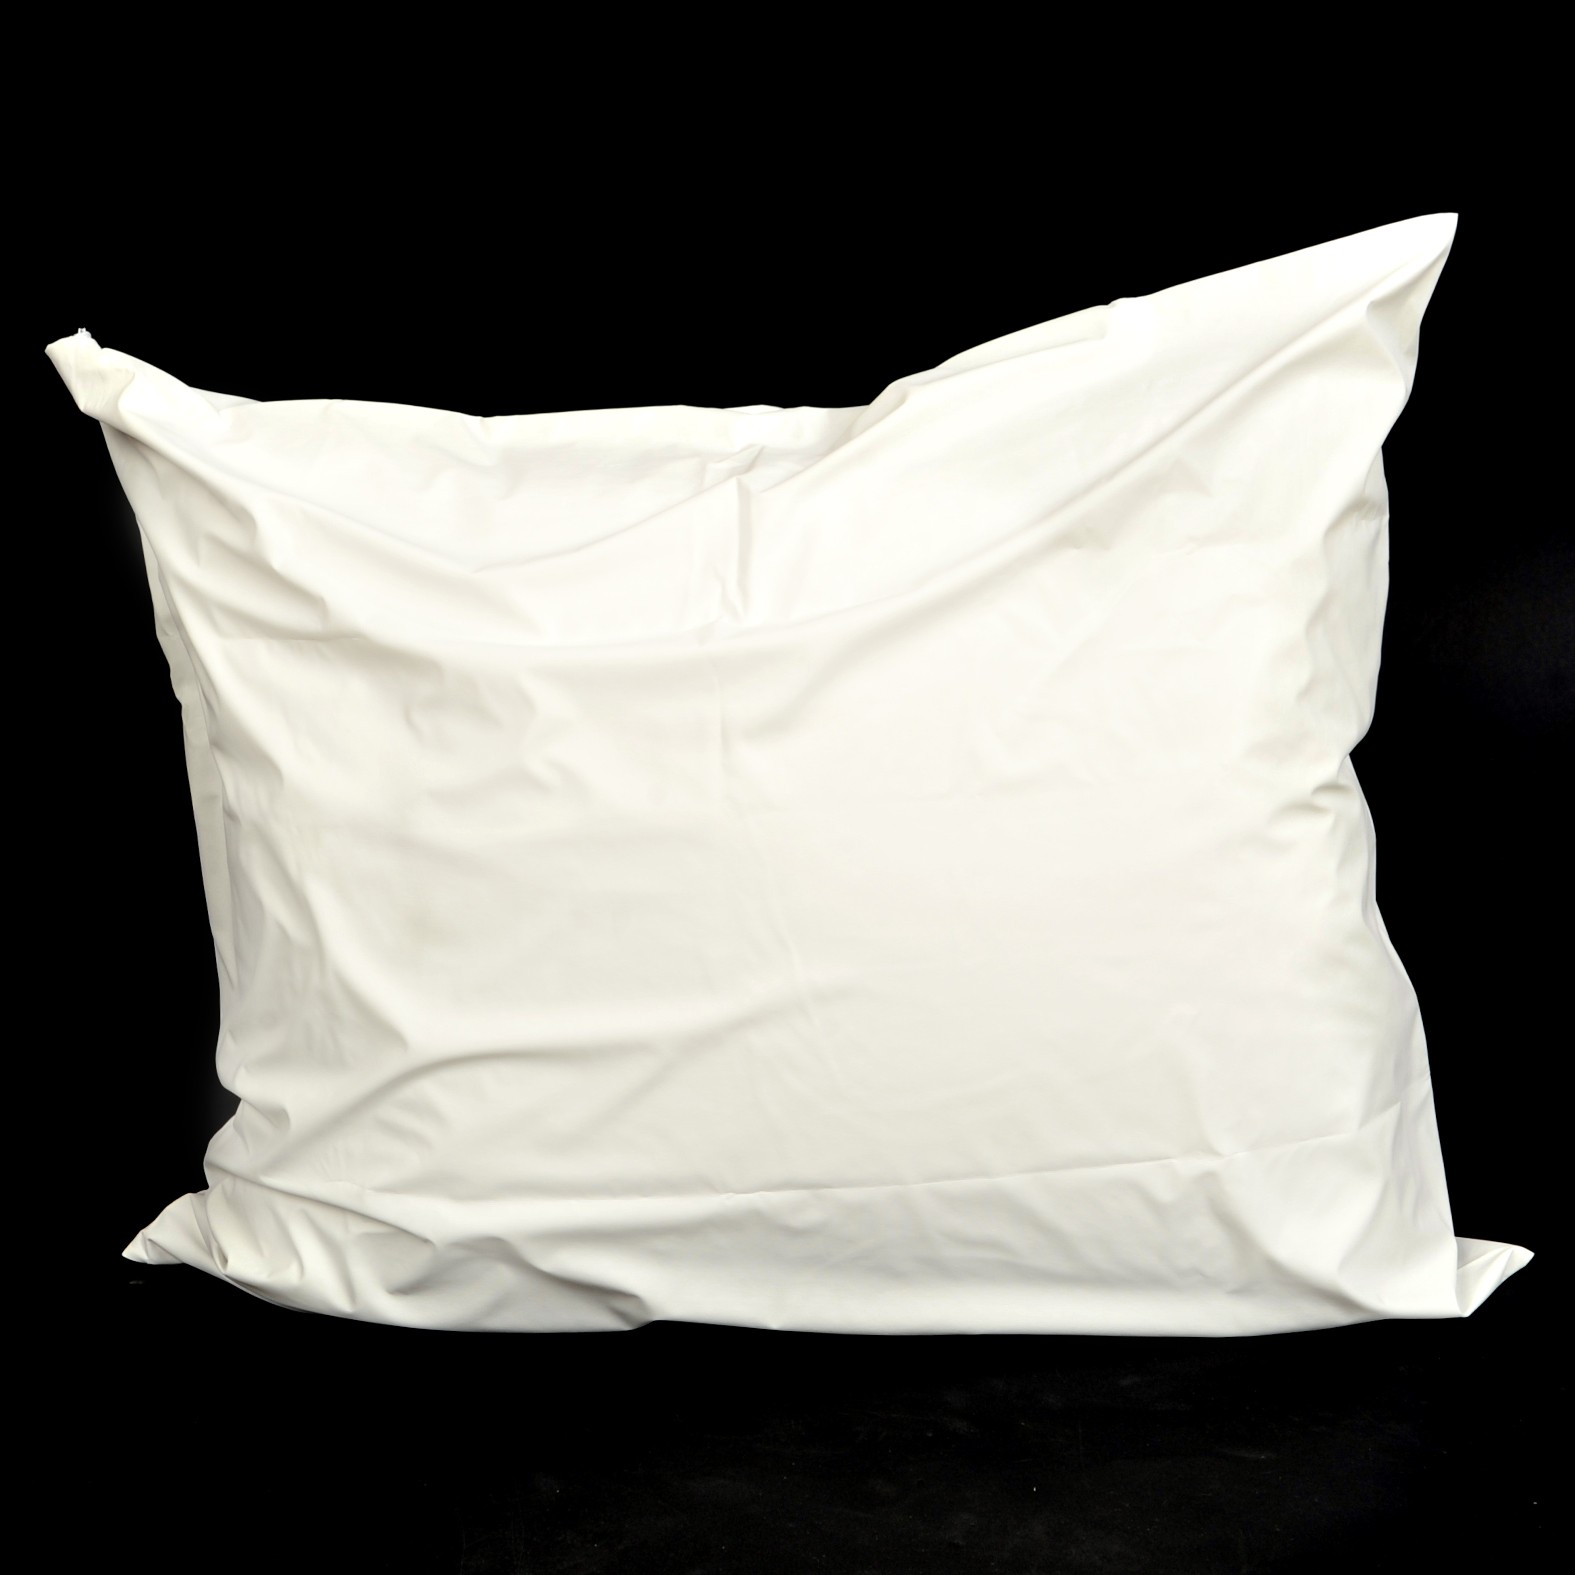 Zijden Kussensloop Hema Anti Allergie Kussenhoes Free Top Pillows With Anti Allergie